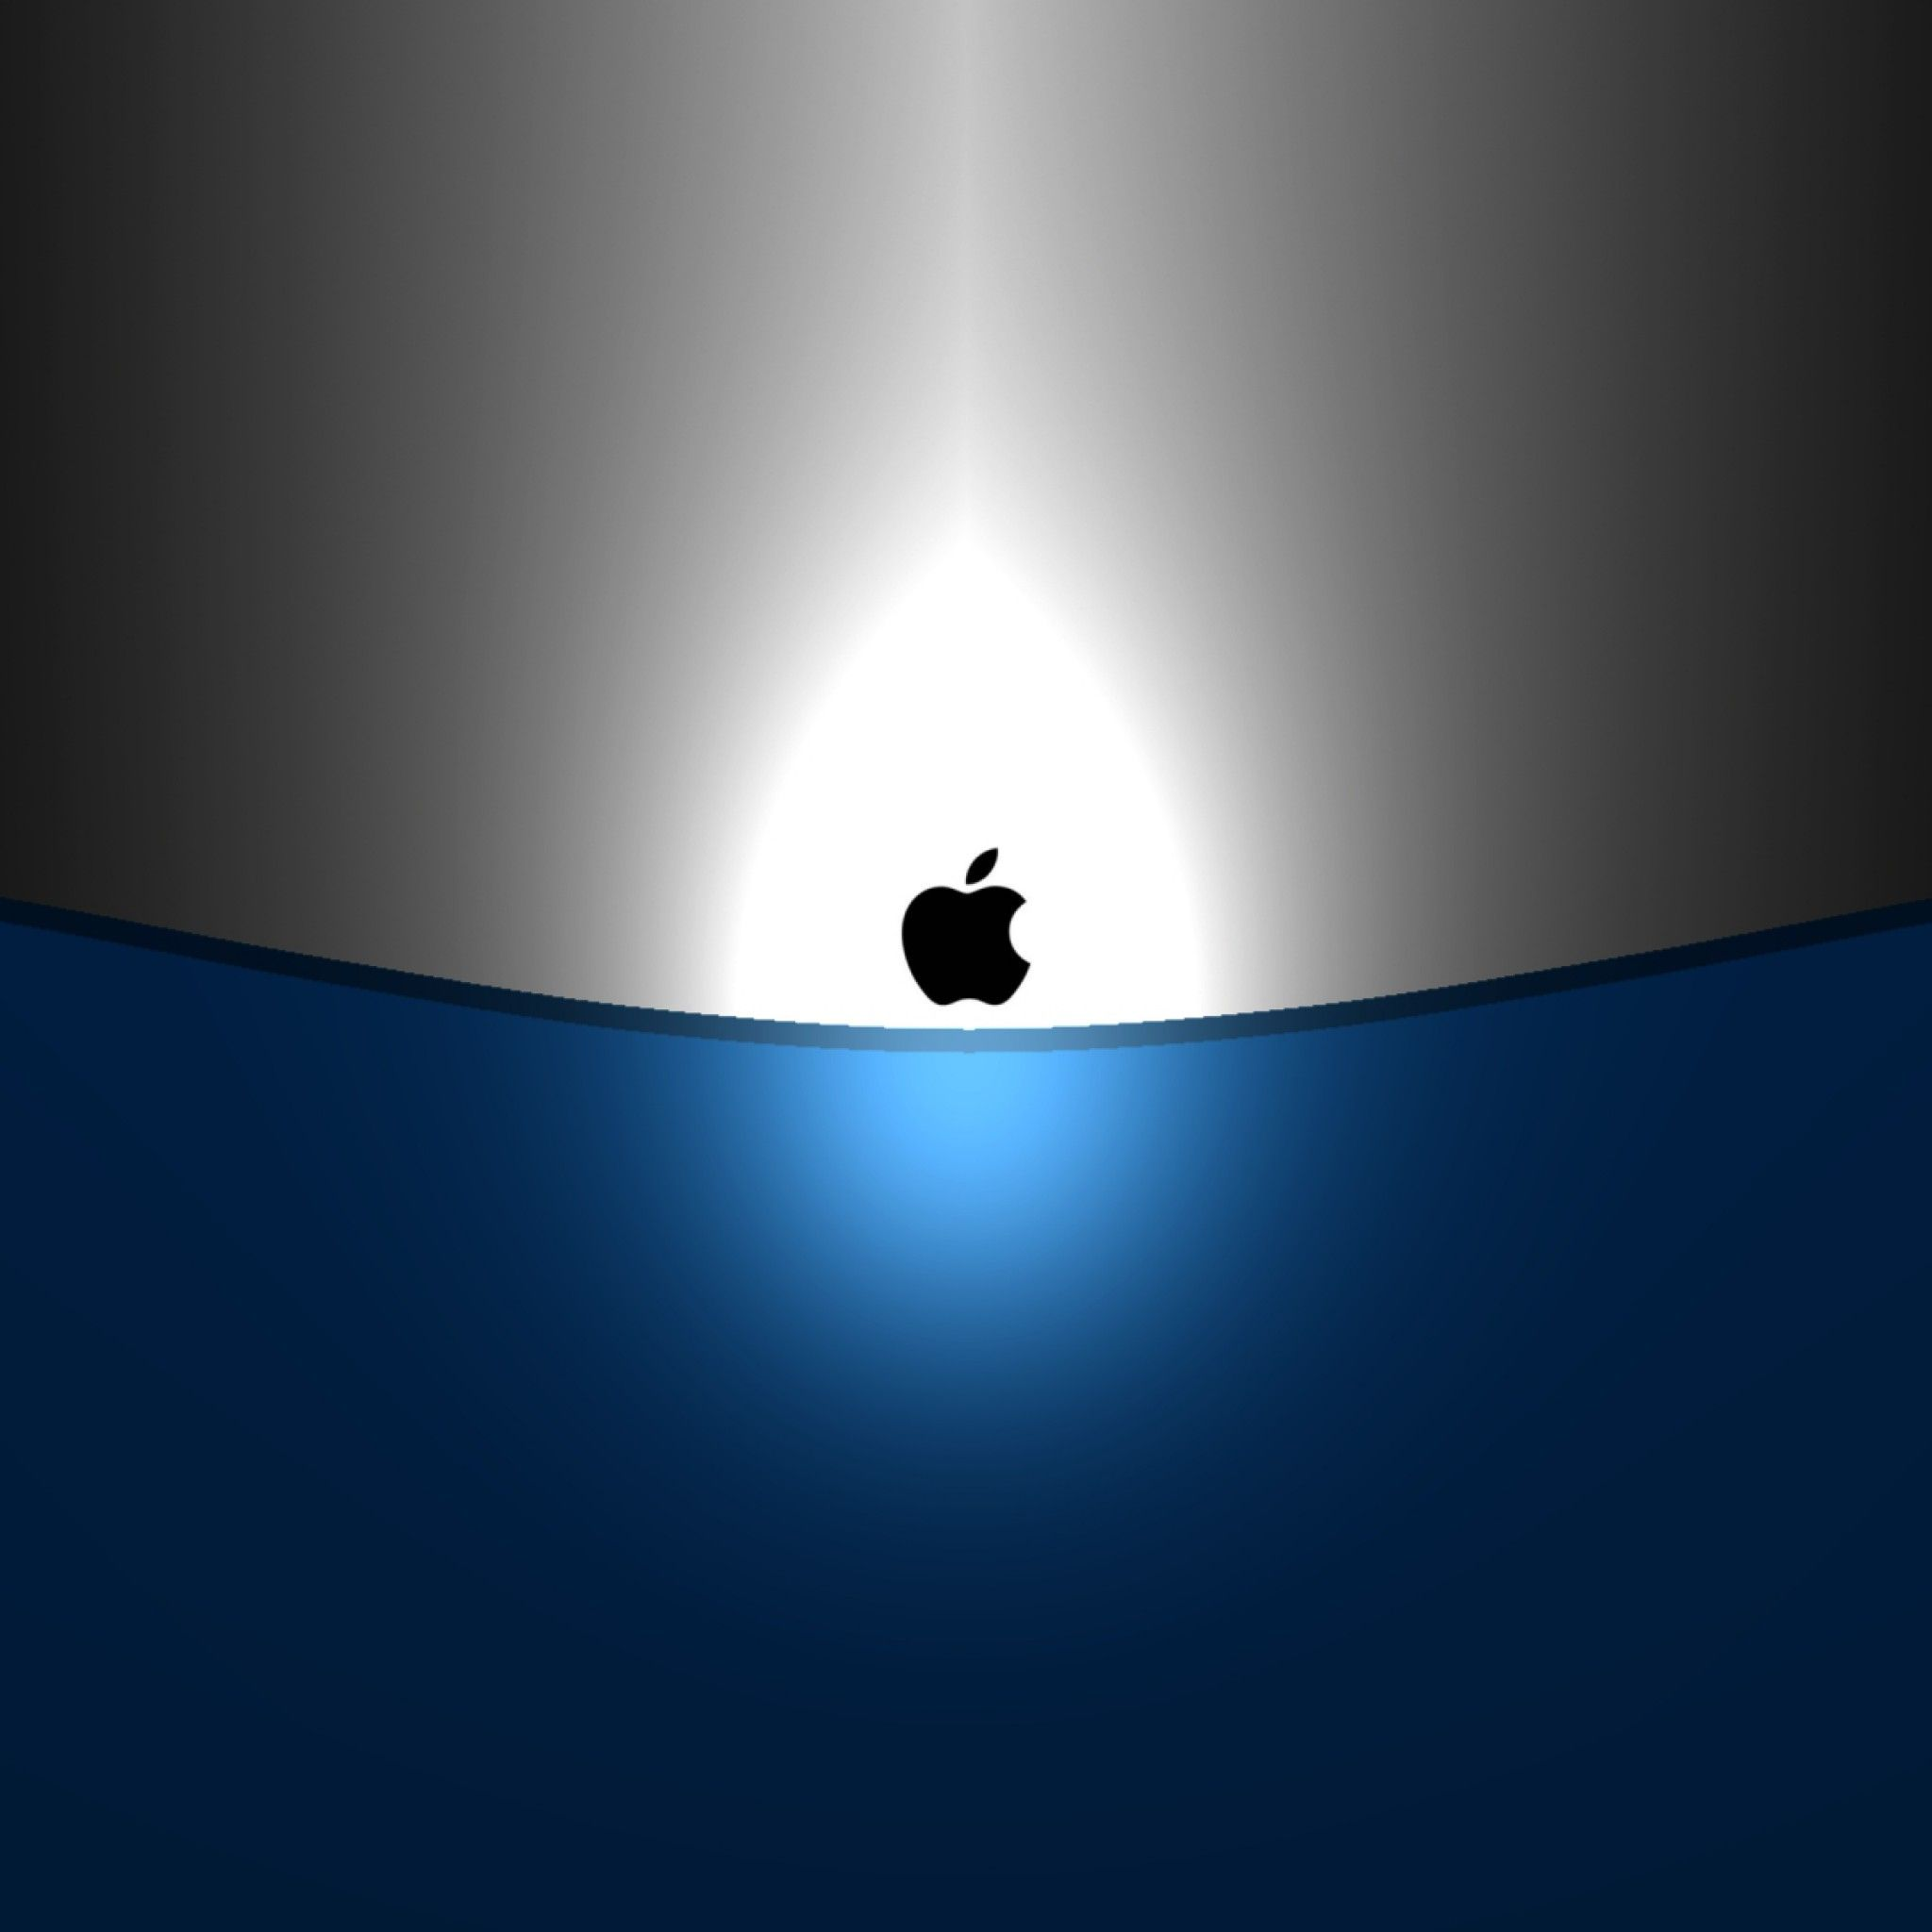 apple iphone 5 backgrounds 91 wallpapers � wallpapers